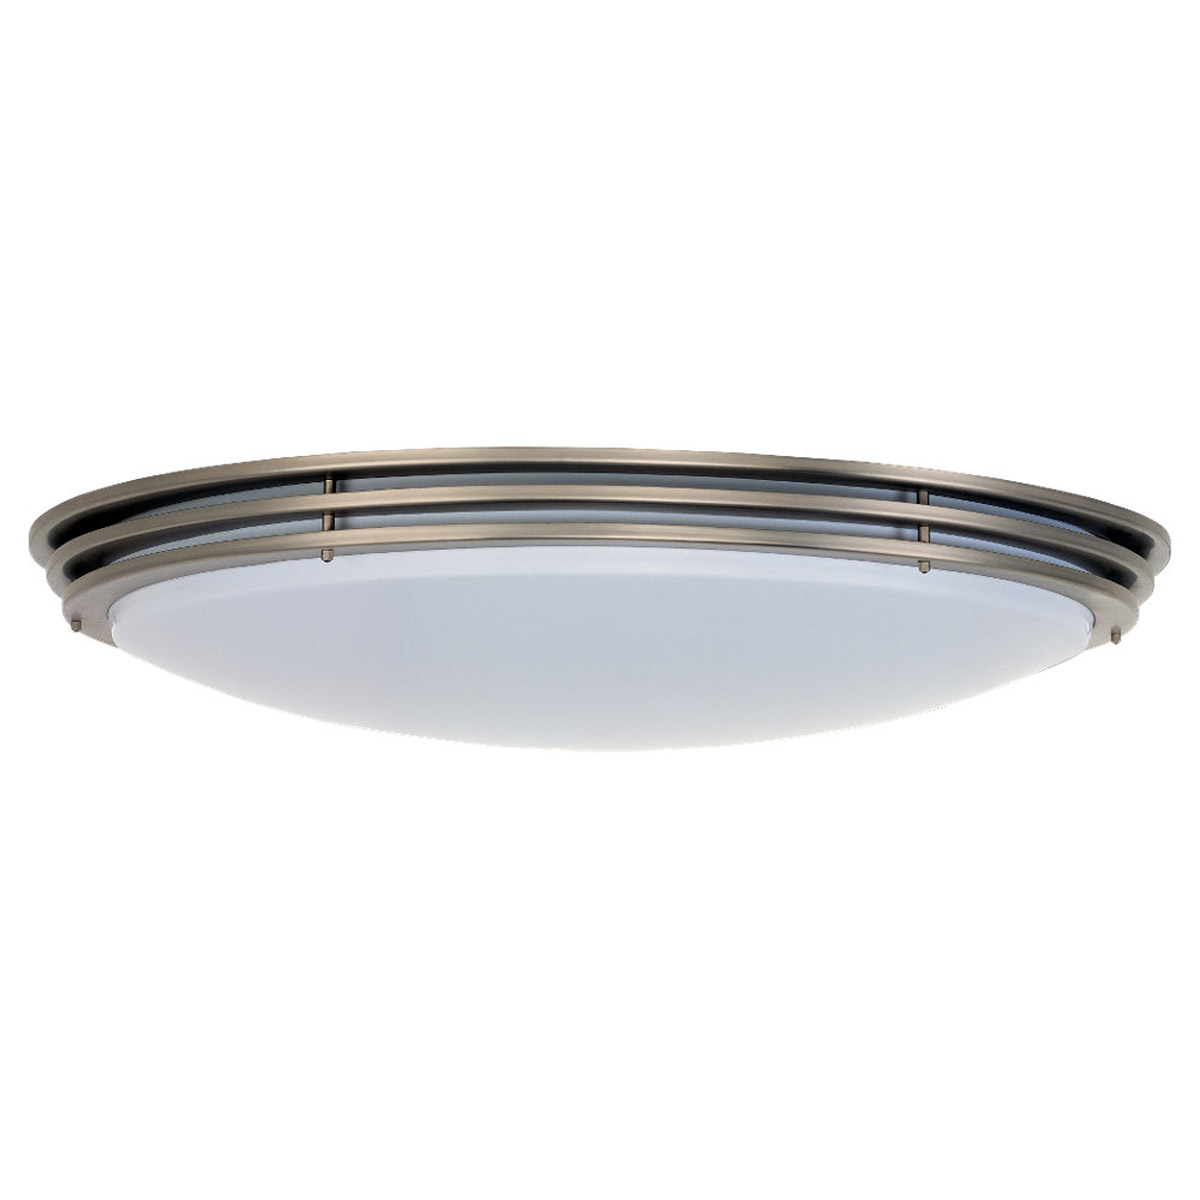 Sea Gull Lighting Nexus 2 Light Fluorescent Flush Mount in Brushed Nickel 59153BLE-962 photo